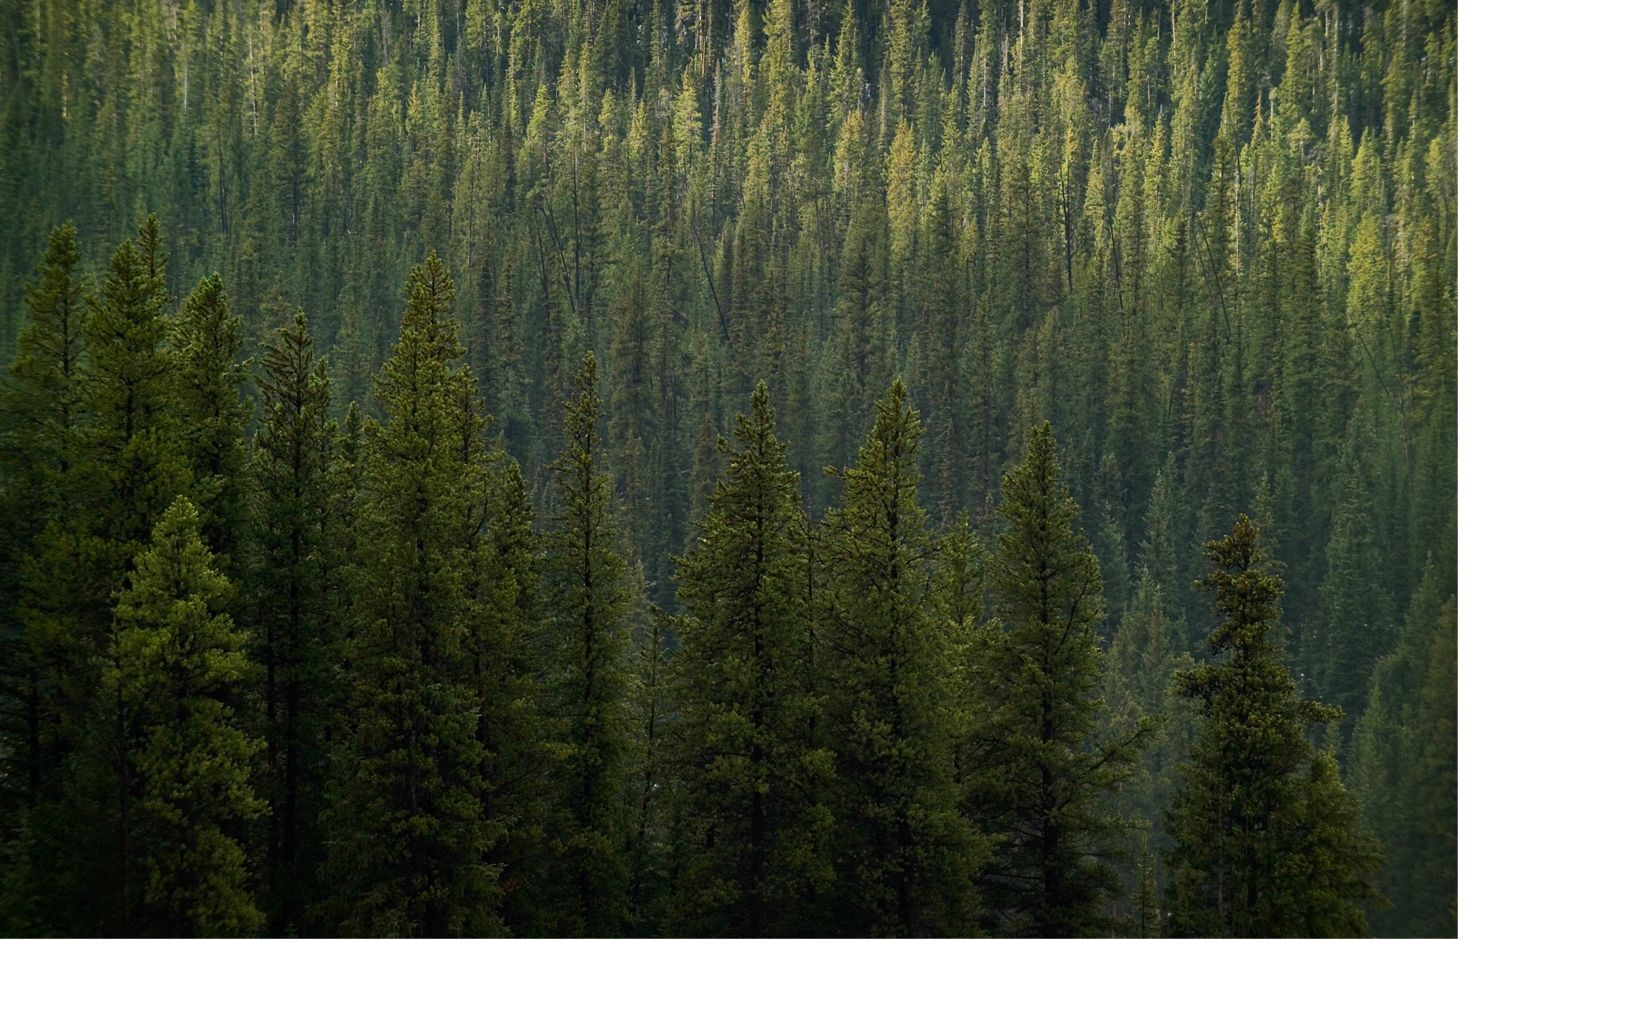 Lodgepole pine forest west of Cameron Pass on highway 14 in Colorado..